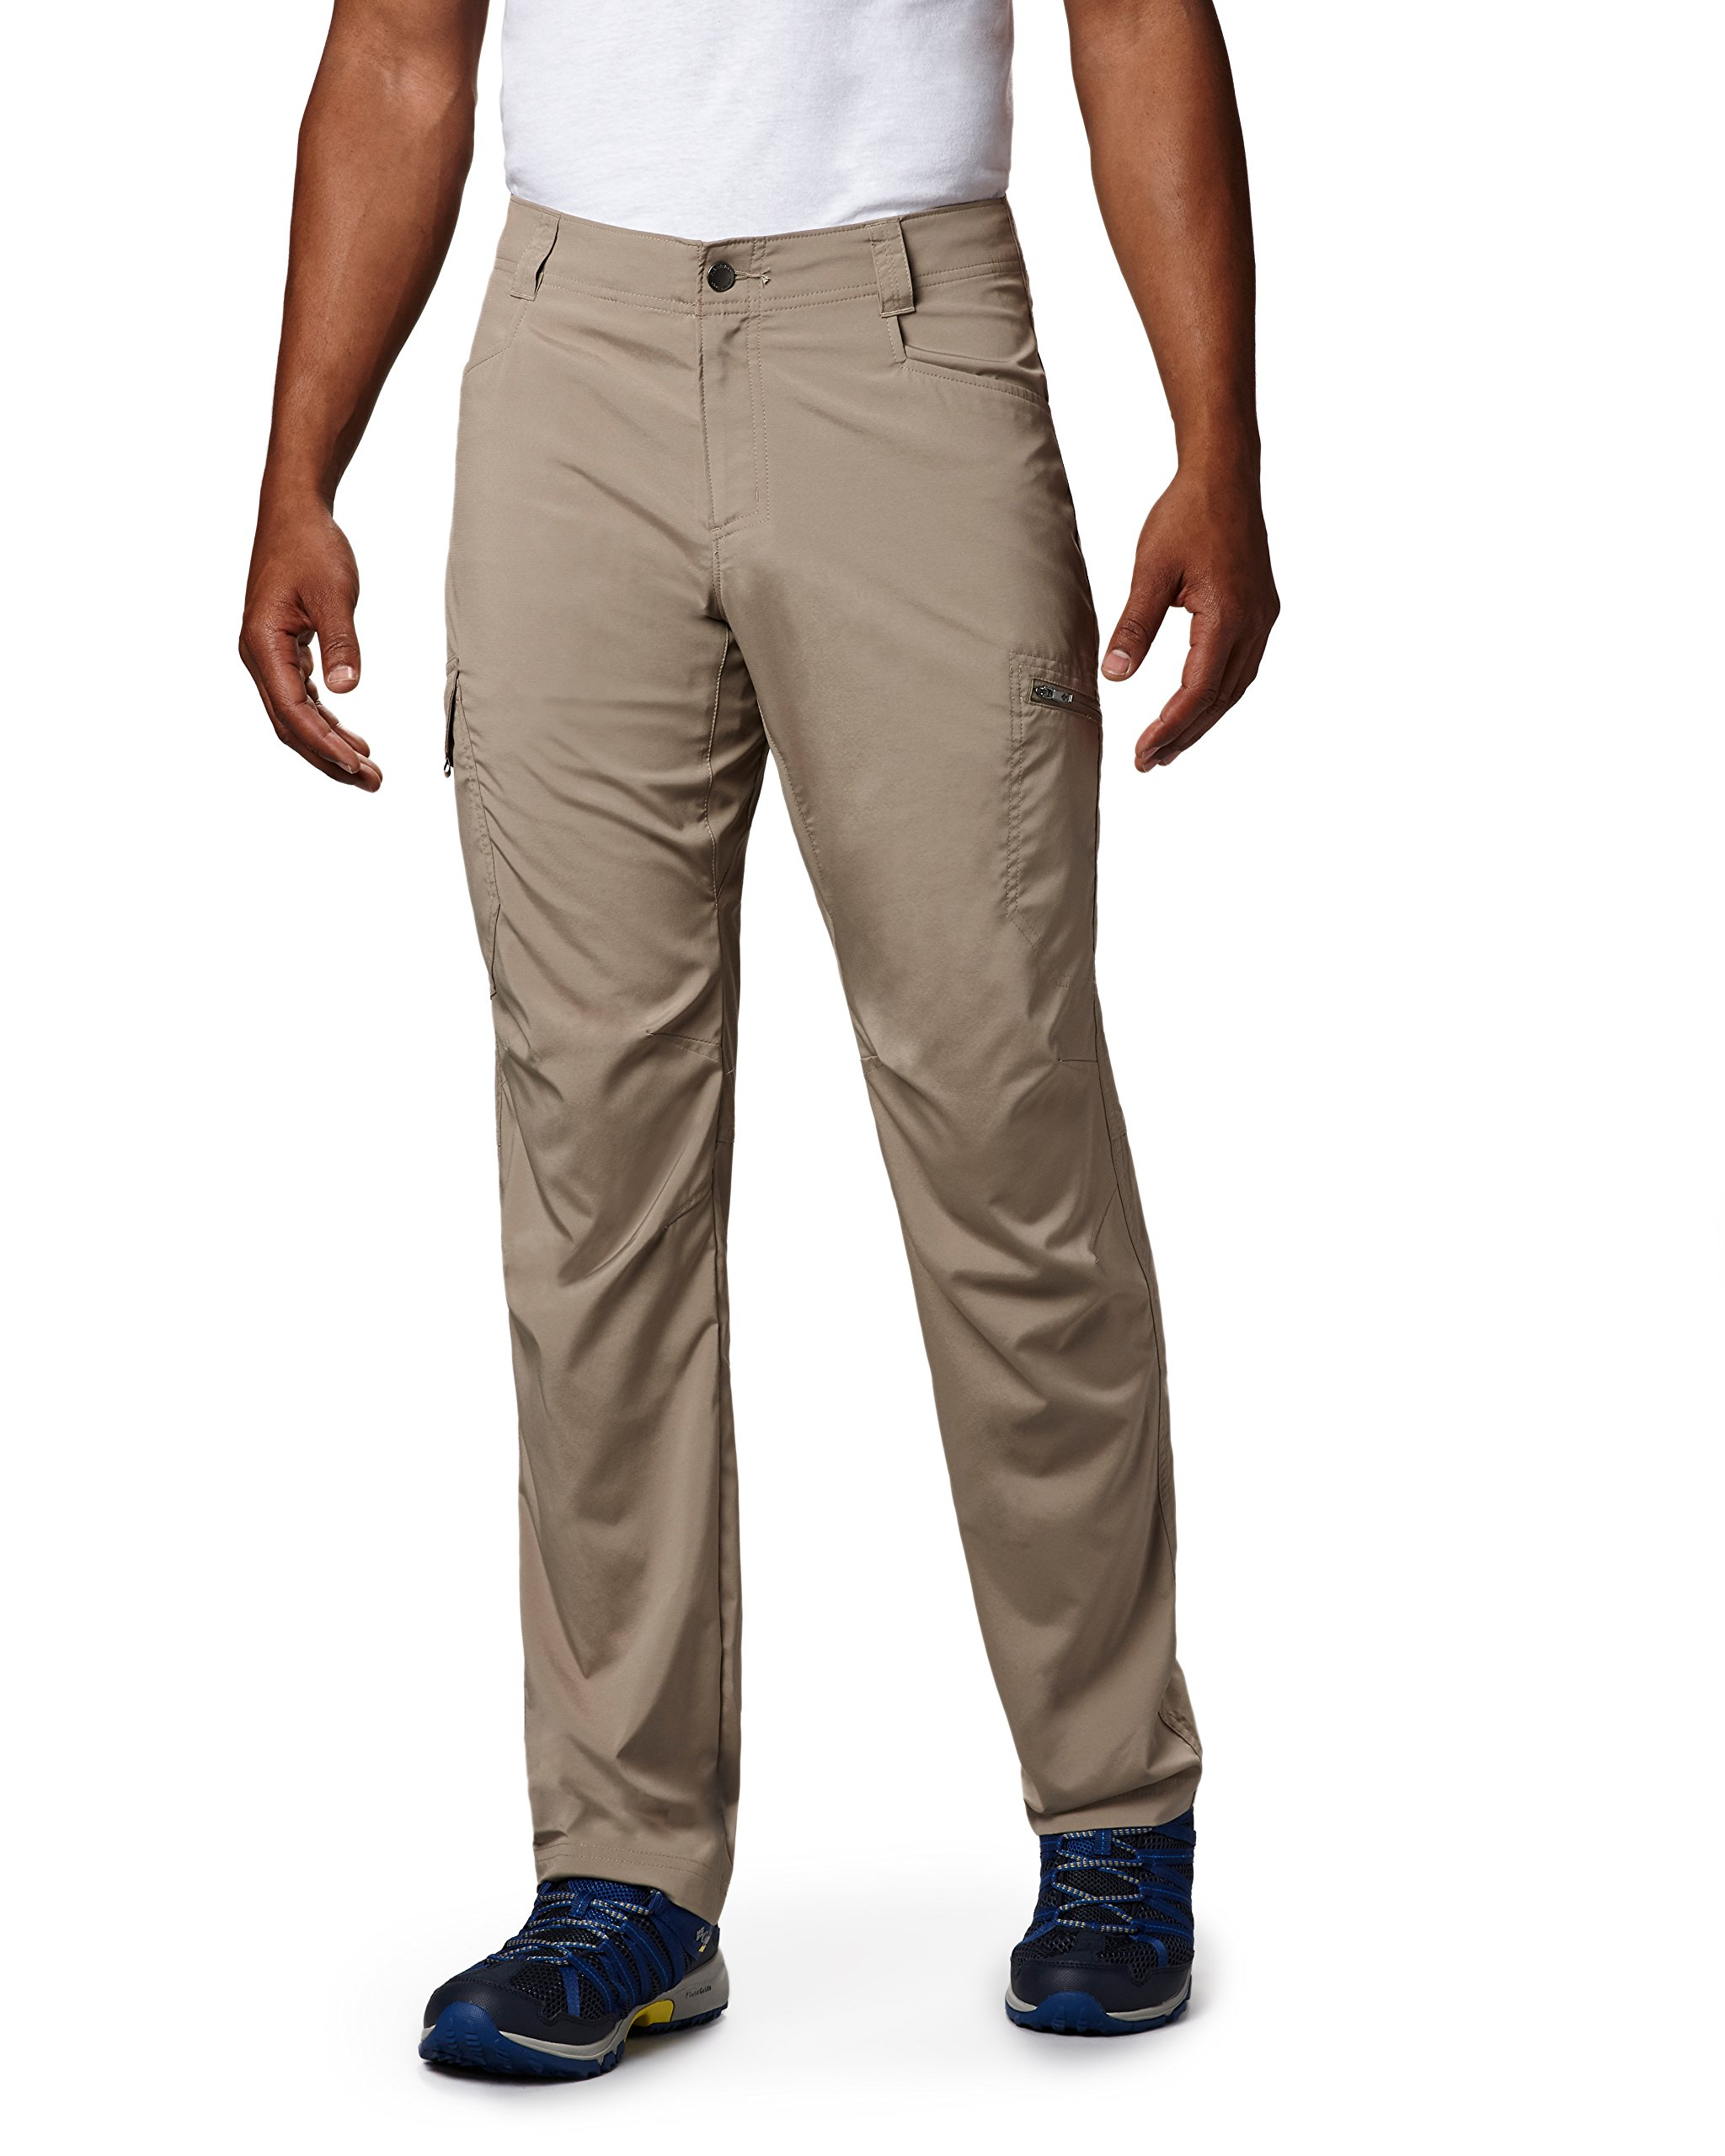 Columbia Men's Silver Ridge Stretch Pants, Tusk, 30 x 30